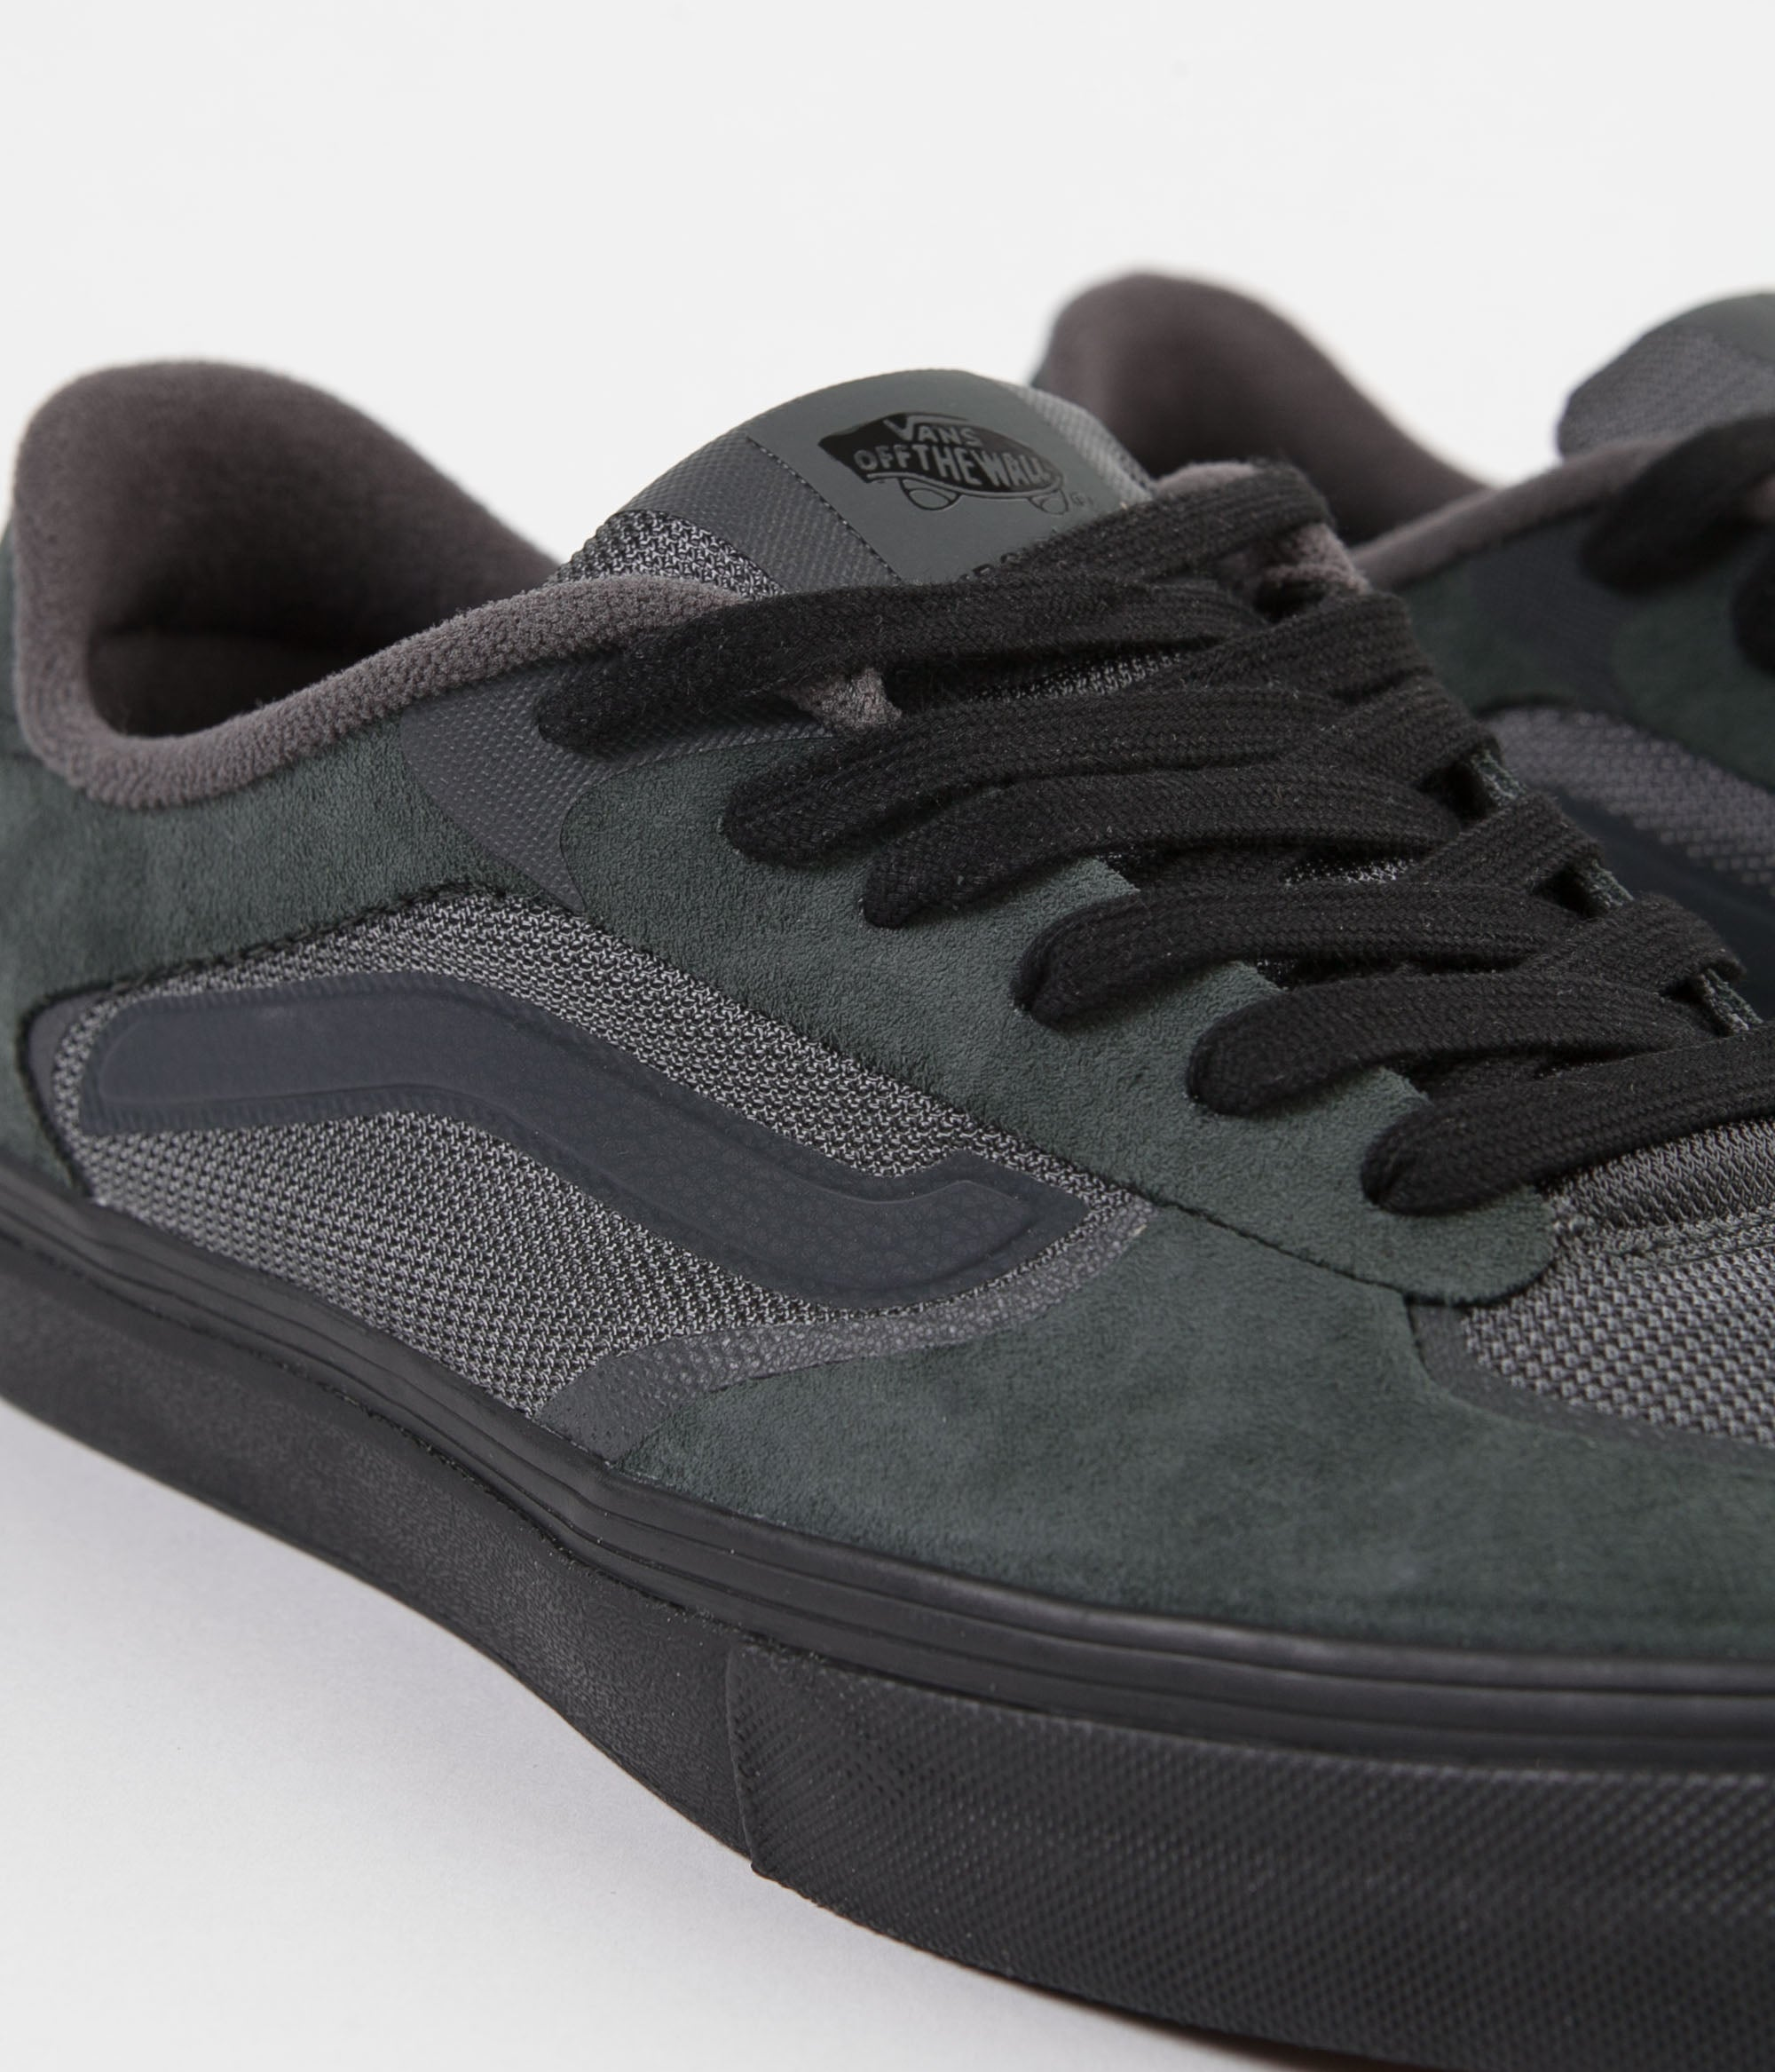 Vans Rowley Rapidweld Pro Shoes - Asphalt / Black